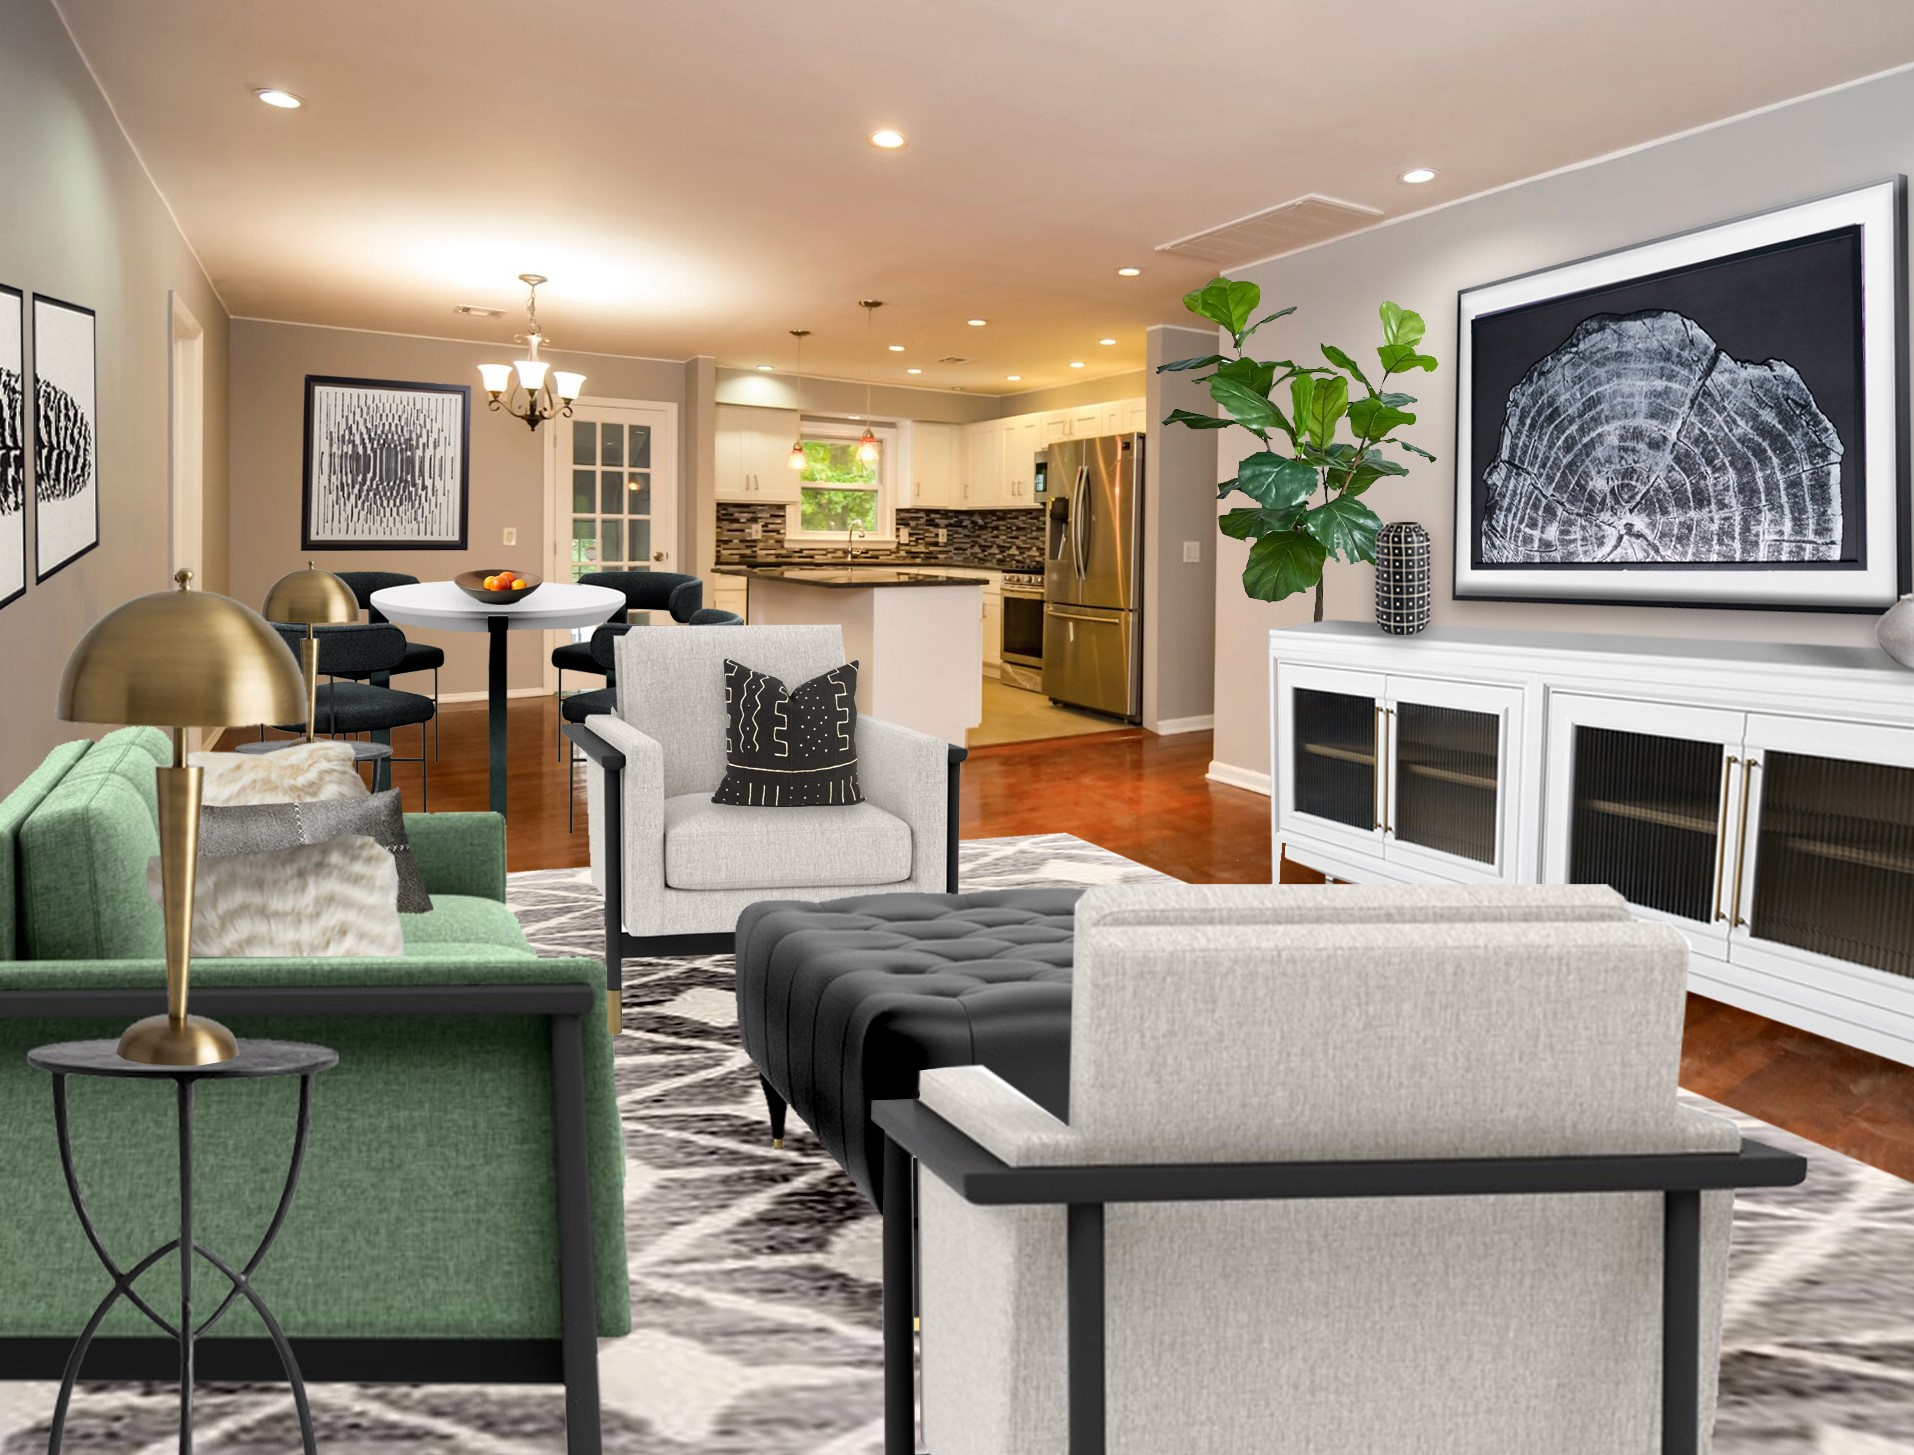 Virtual home staging by Northern Lights Home Staging and Design #homestaging #virtualhomestaging #virtualstaging #electronicstaging #edesign #onlinedesign #realestatemarketing